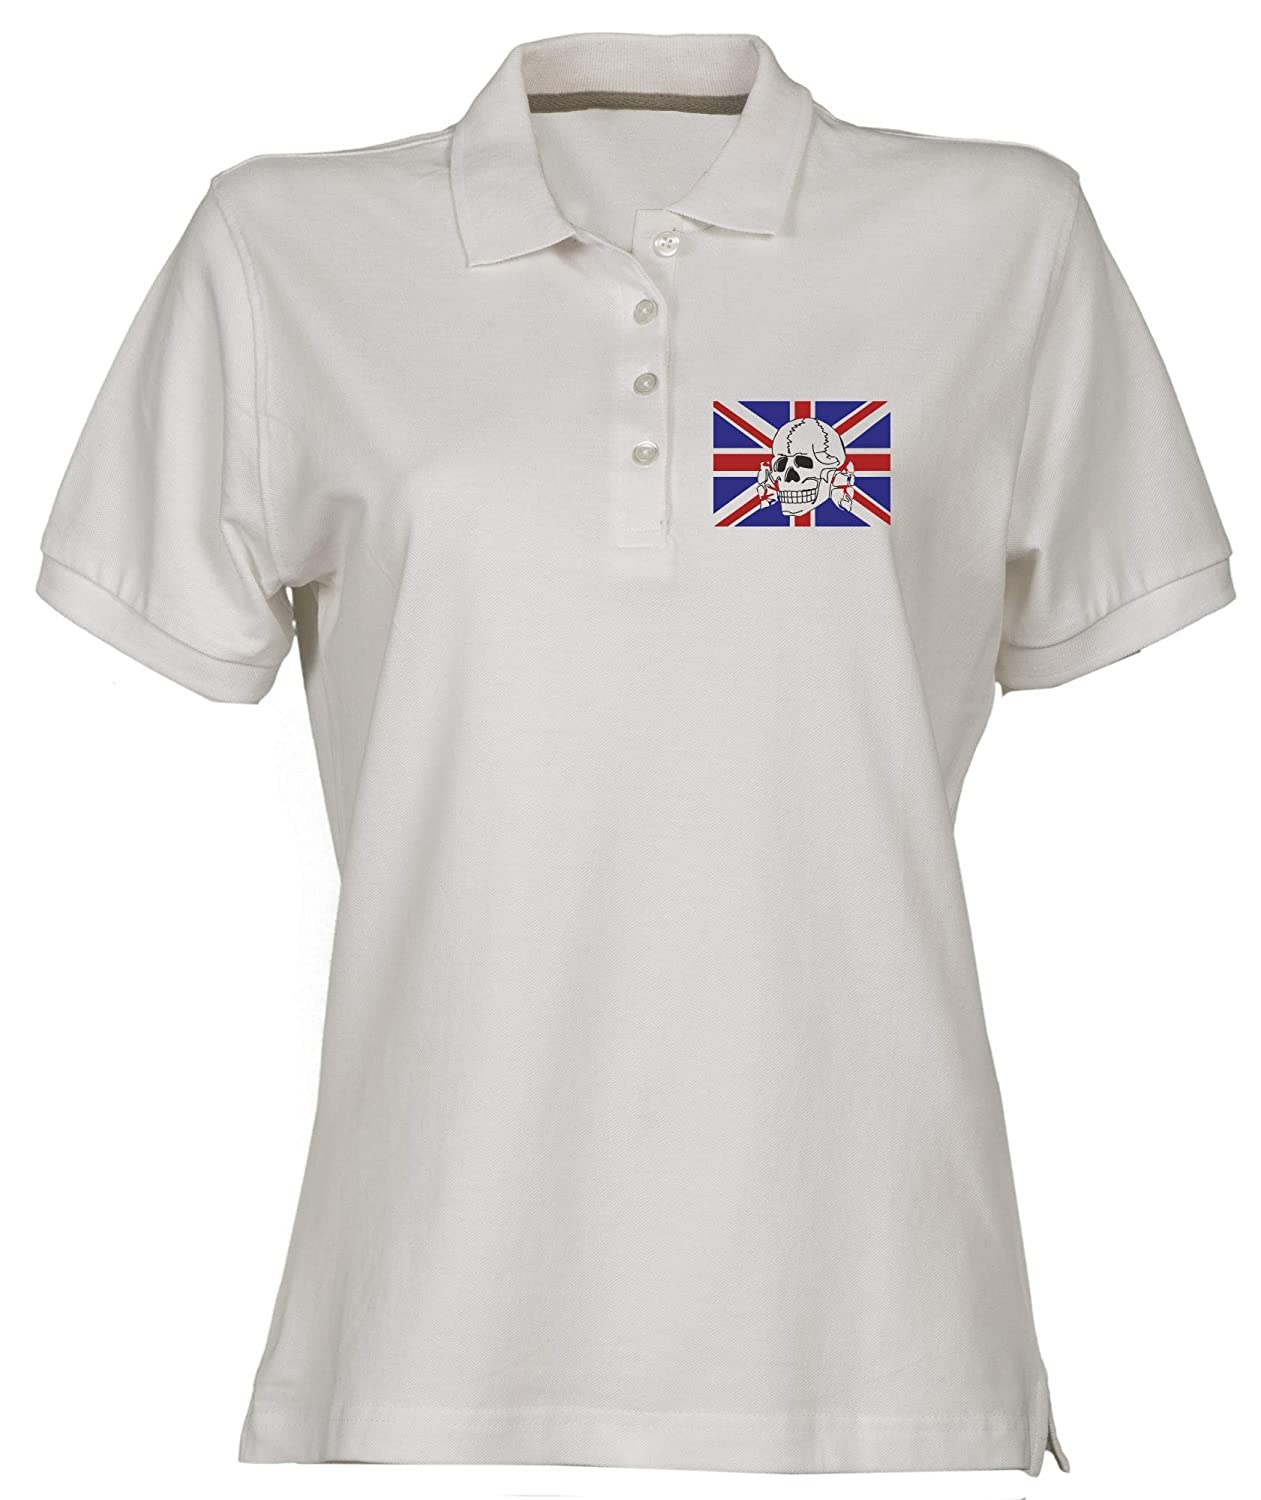 Polo para Mujer Blanco TUM0015 Chelsea Headhunters: Amazon.es ...